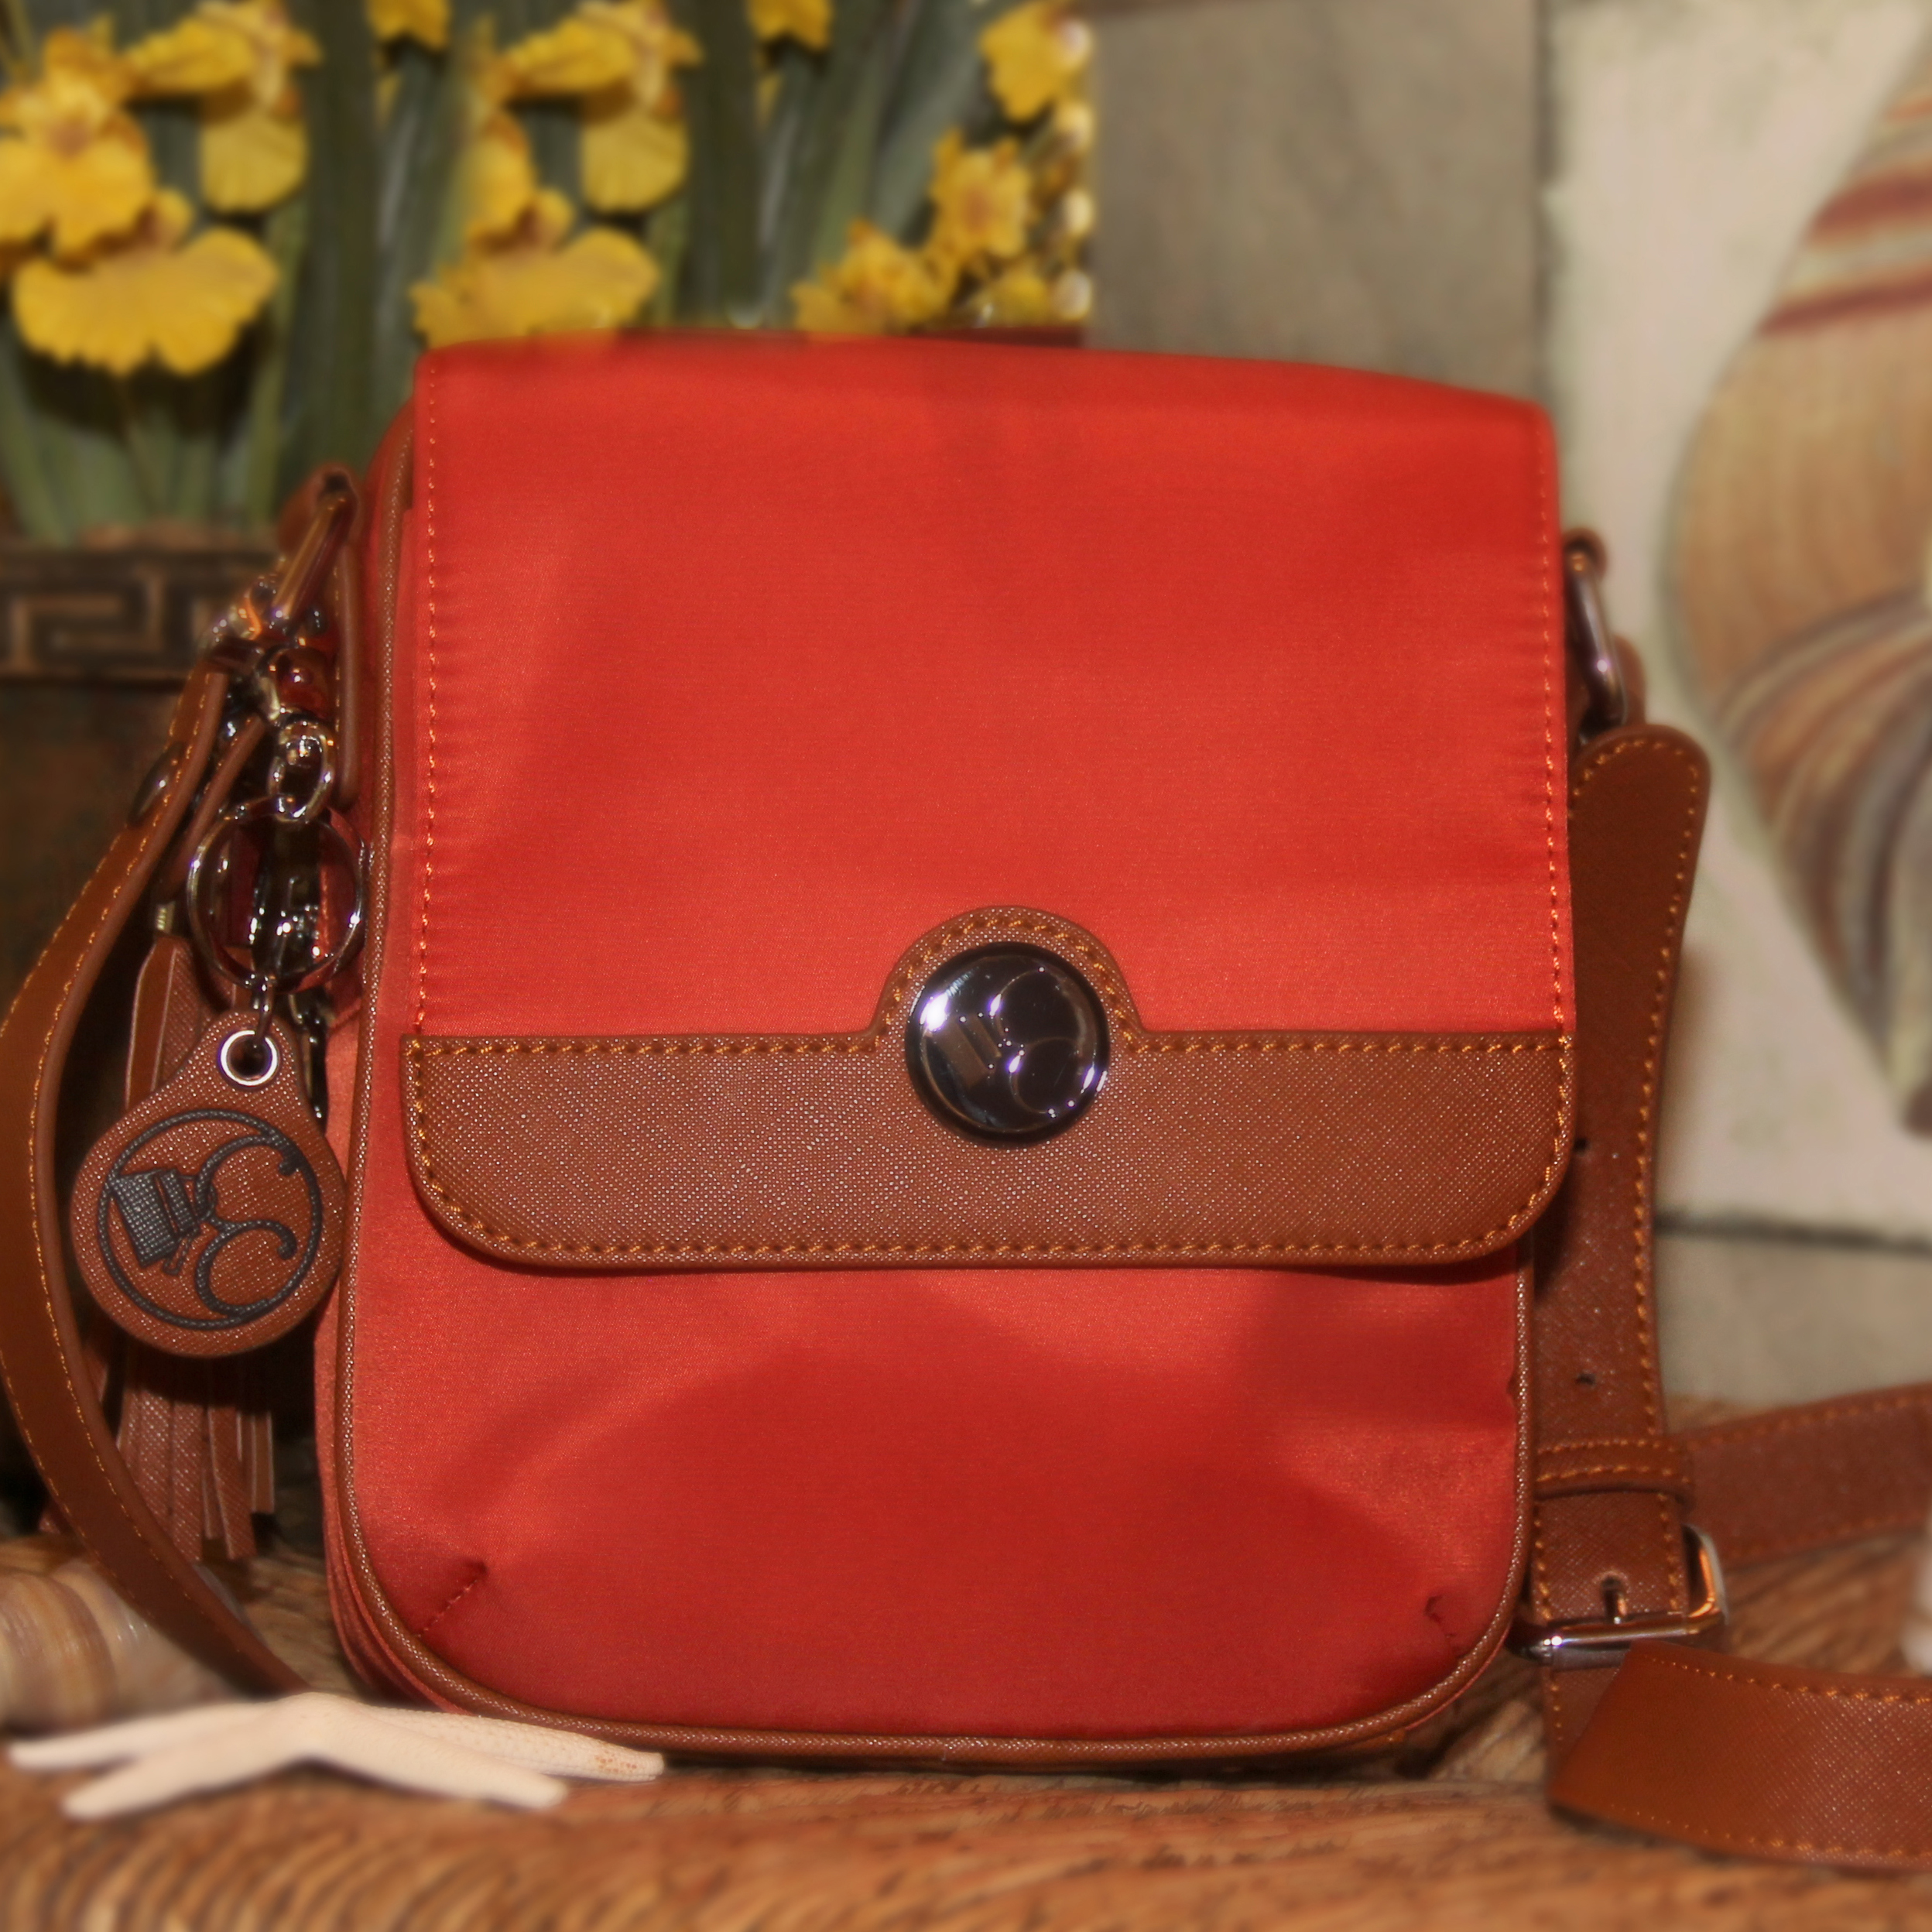 Concealed Carrie Spice Crossbody